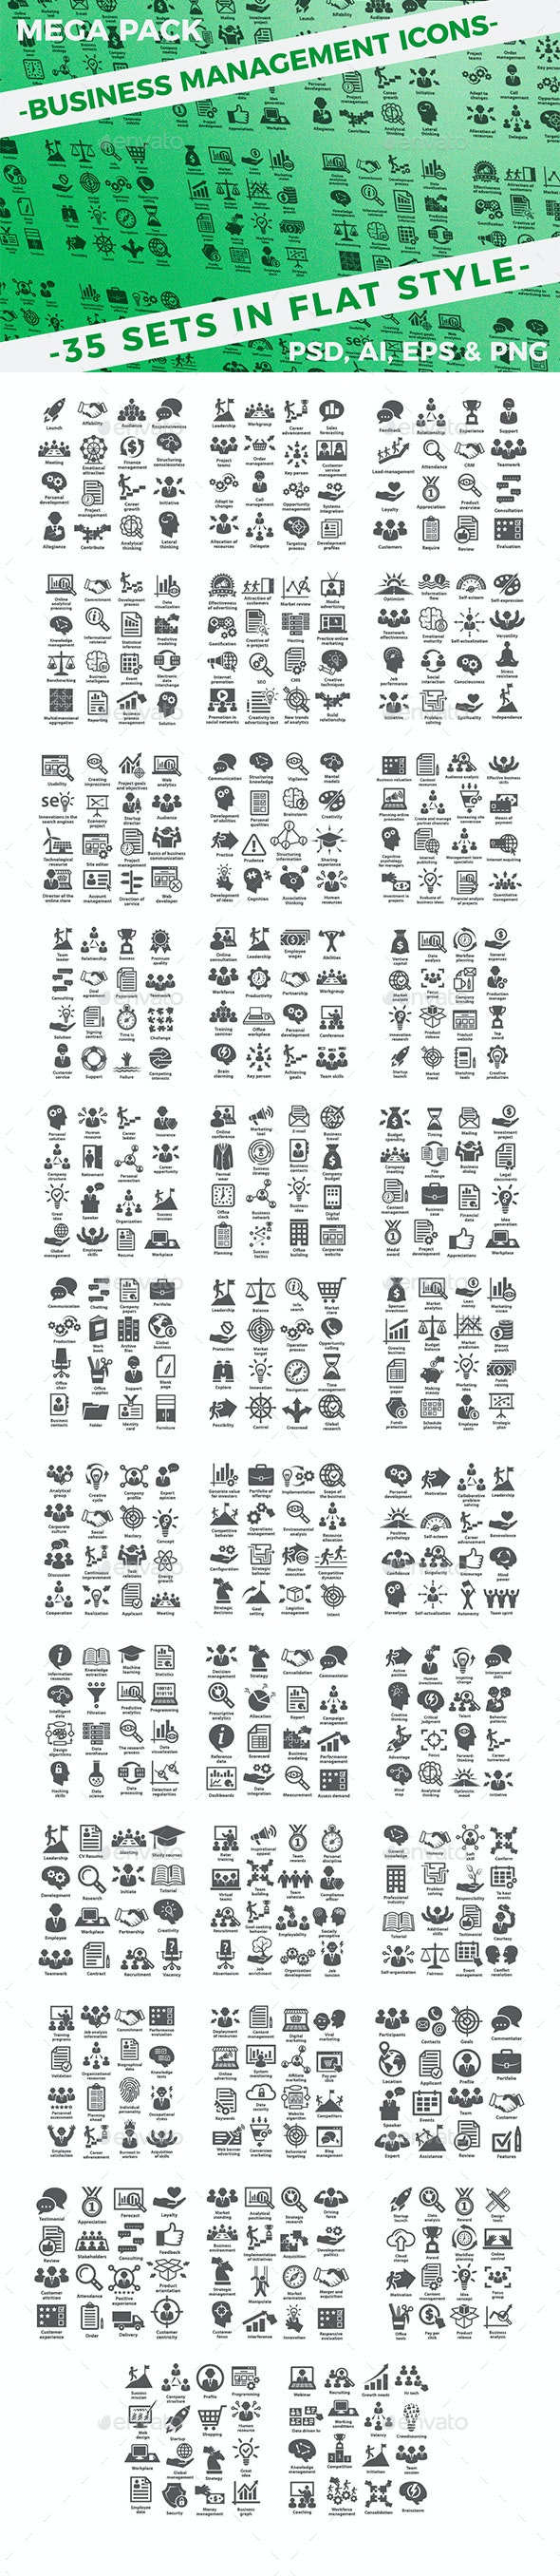 Business management icons.Mega Pack. - Business Icons